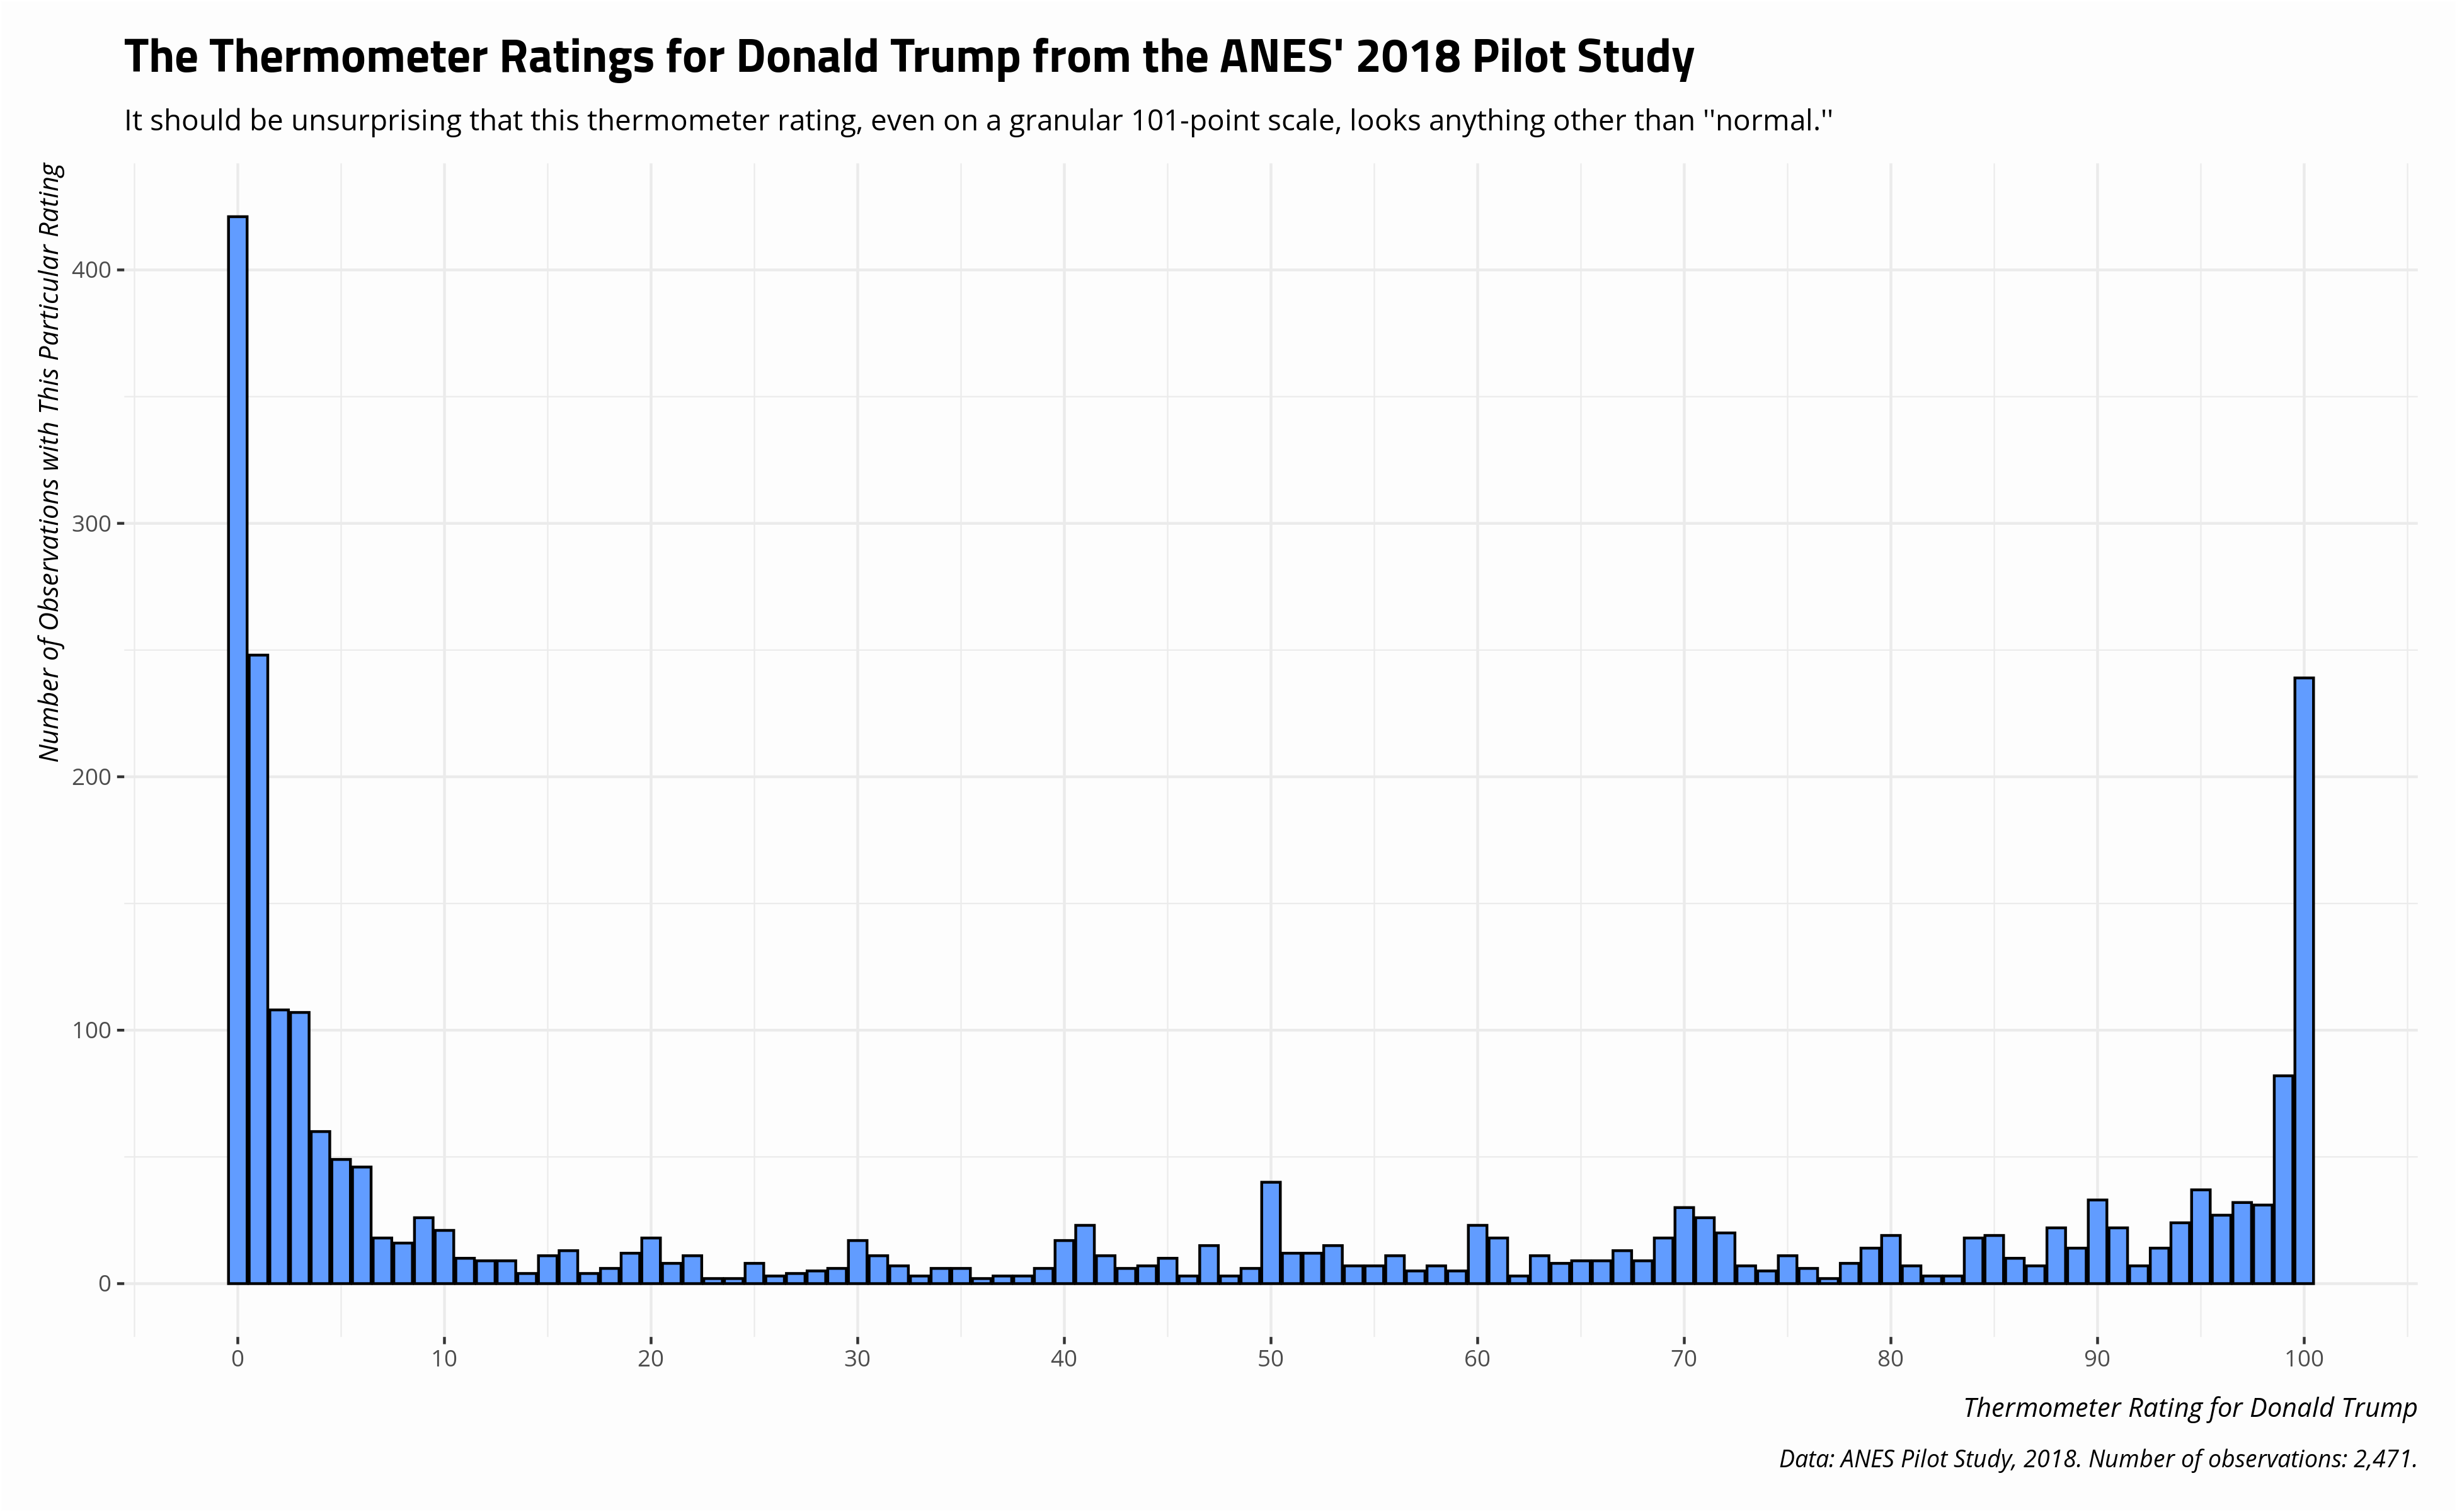 plot of chunk thermometer-rating-donald-trump-anes-2018